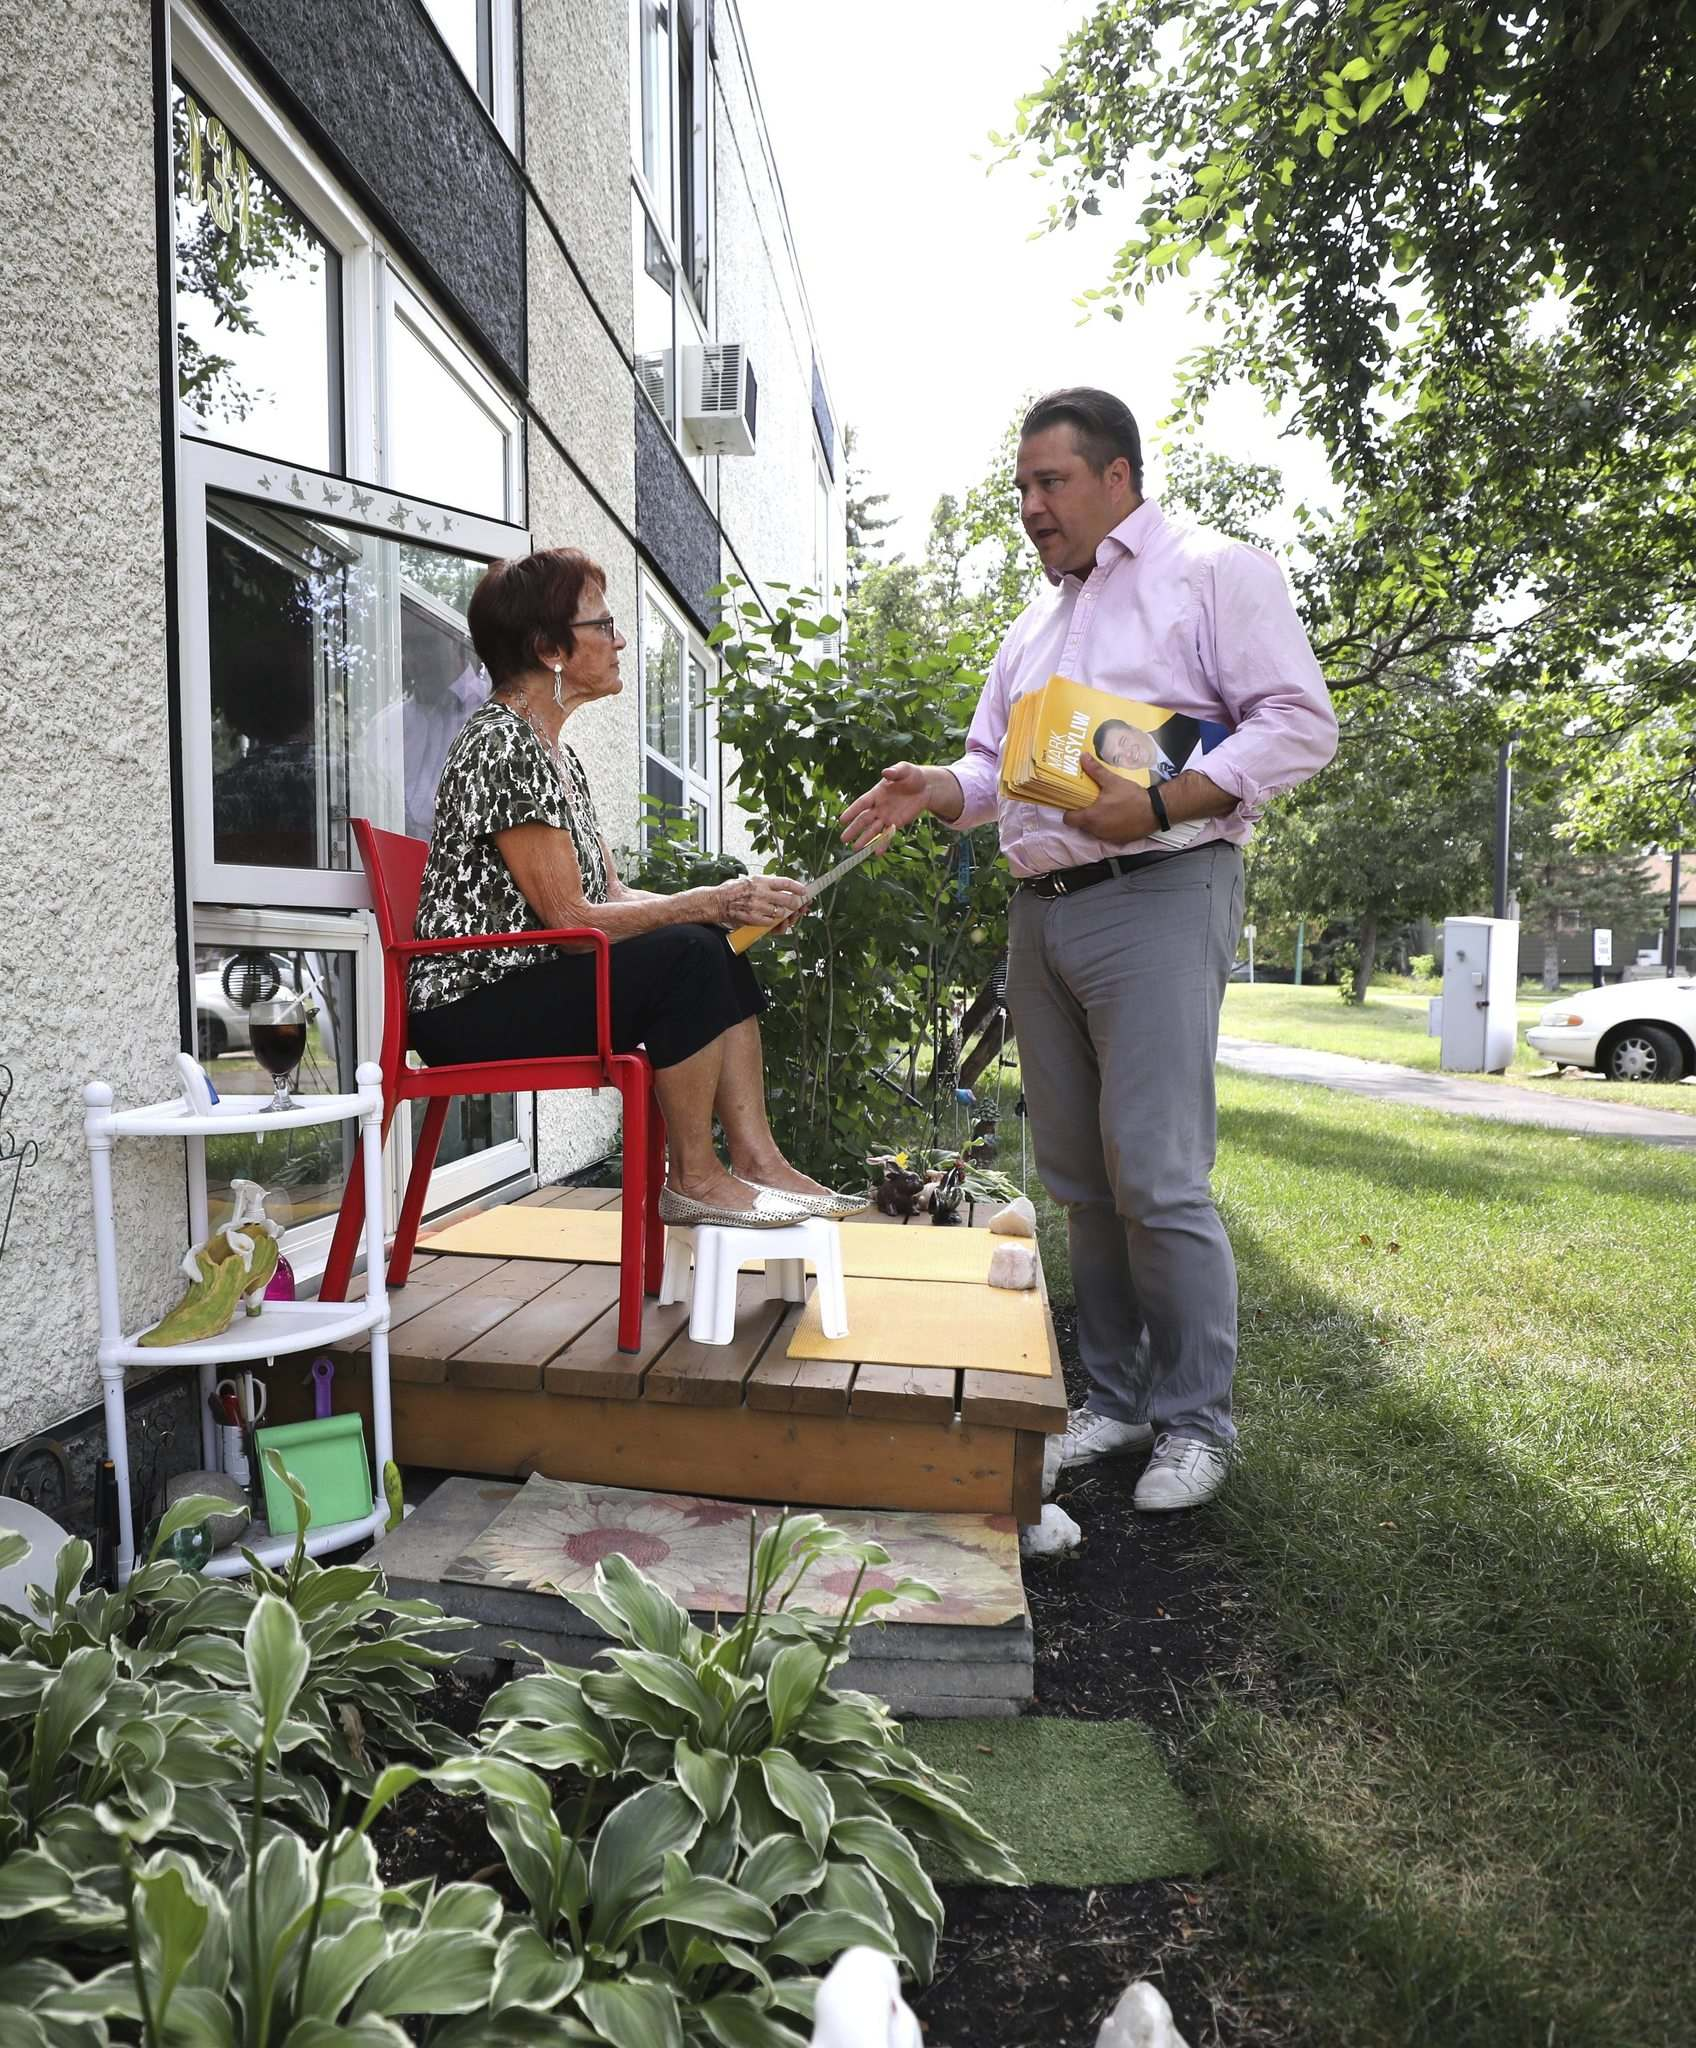 RUTH BONNEVILLE / WINNIPEG FREE PRESS</p><p> NDP candidate Mark Wasyliw campaigns on Hudson Avenue. He says health care, child care and seniors' housing are issues voters are raising with him.</p>